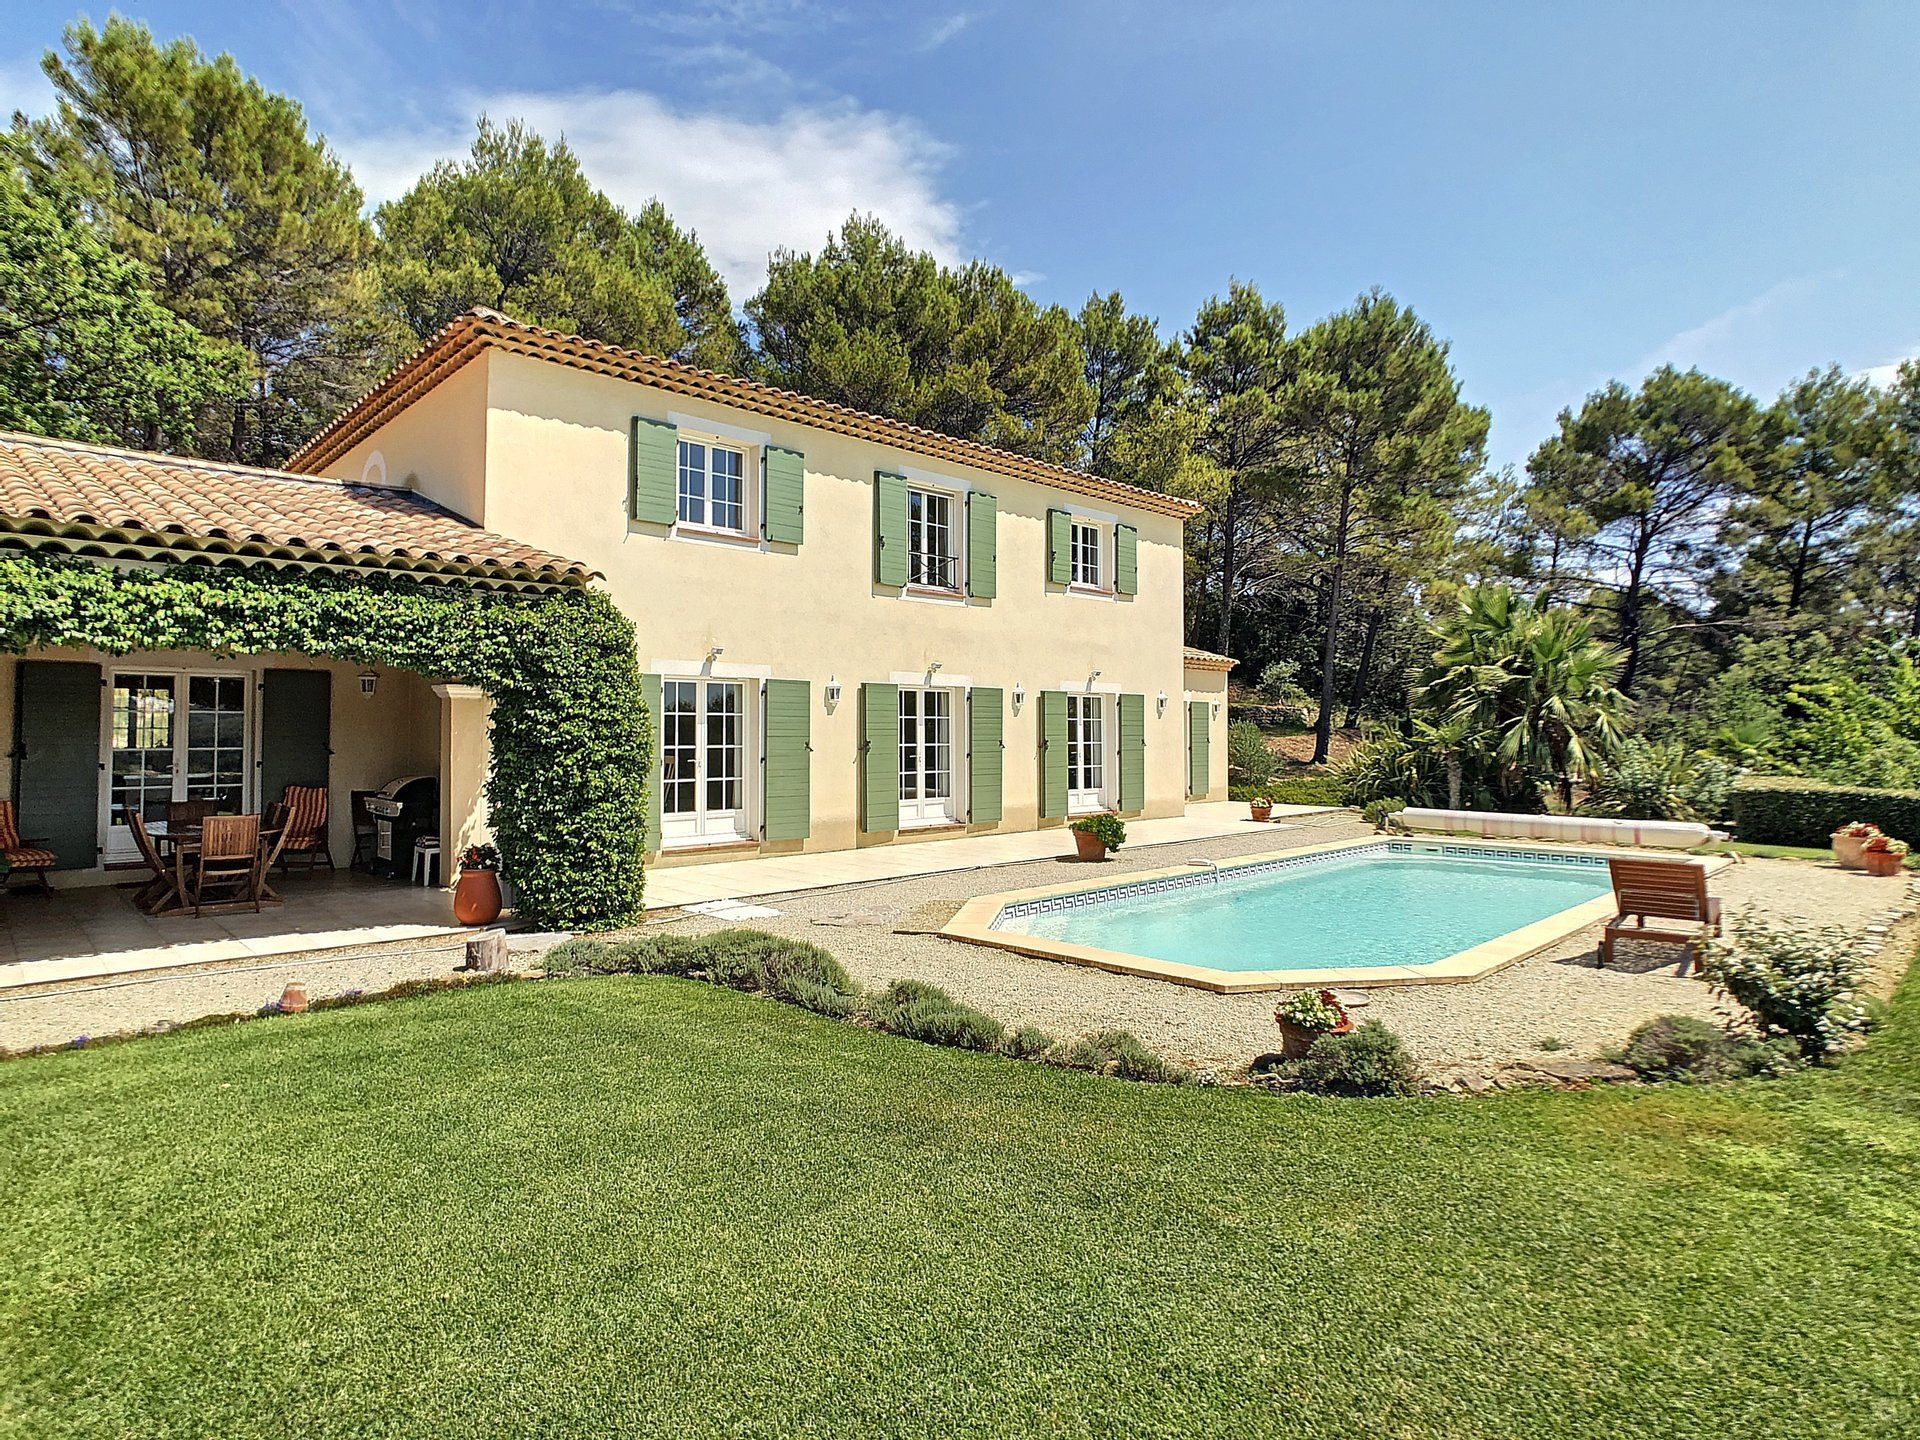 Luxurious villa, 4 bedrooms, 4 bathrooms, and olive grove close to Flayosc